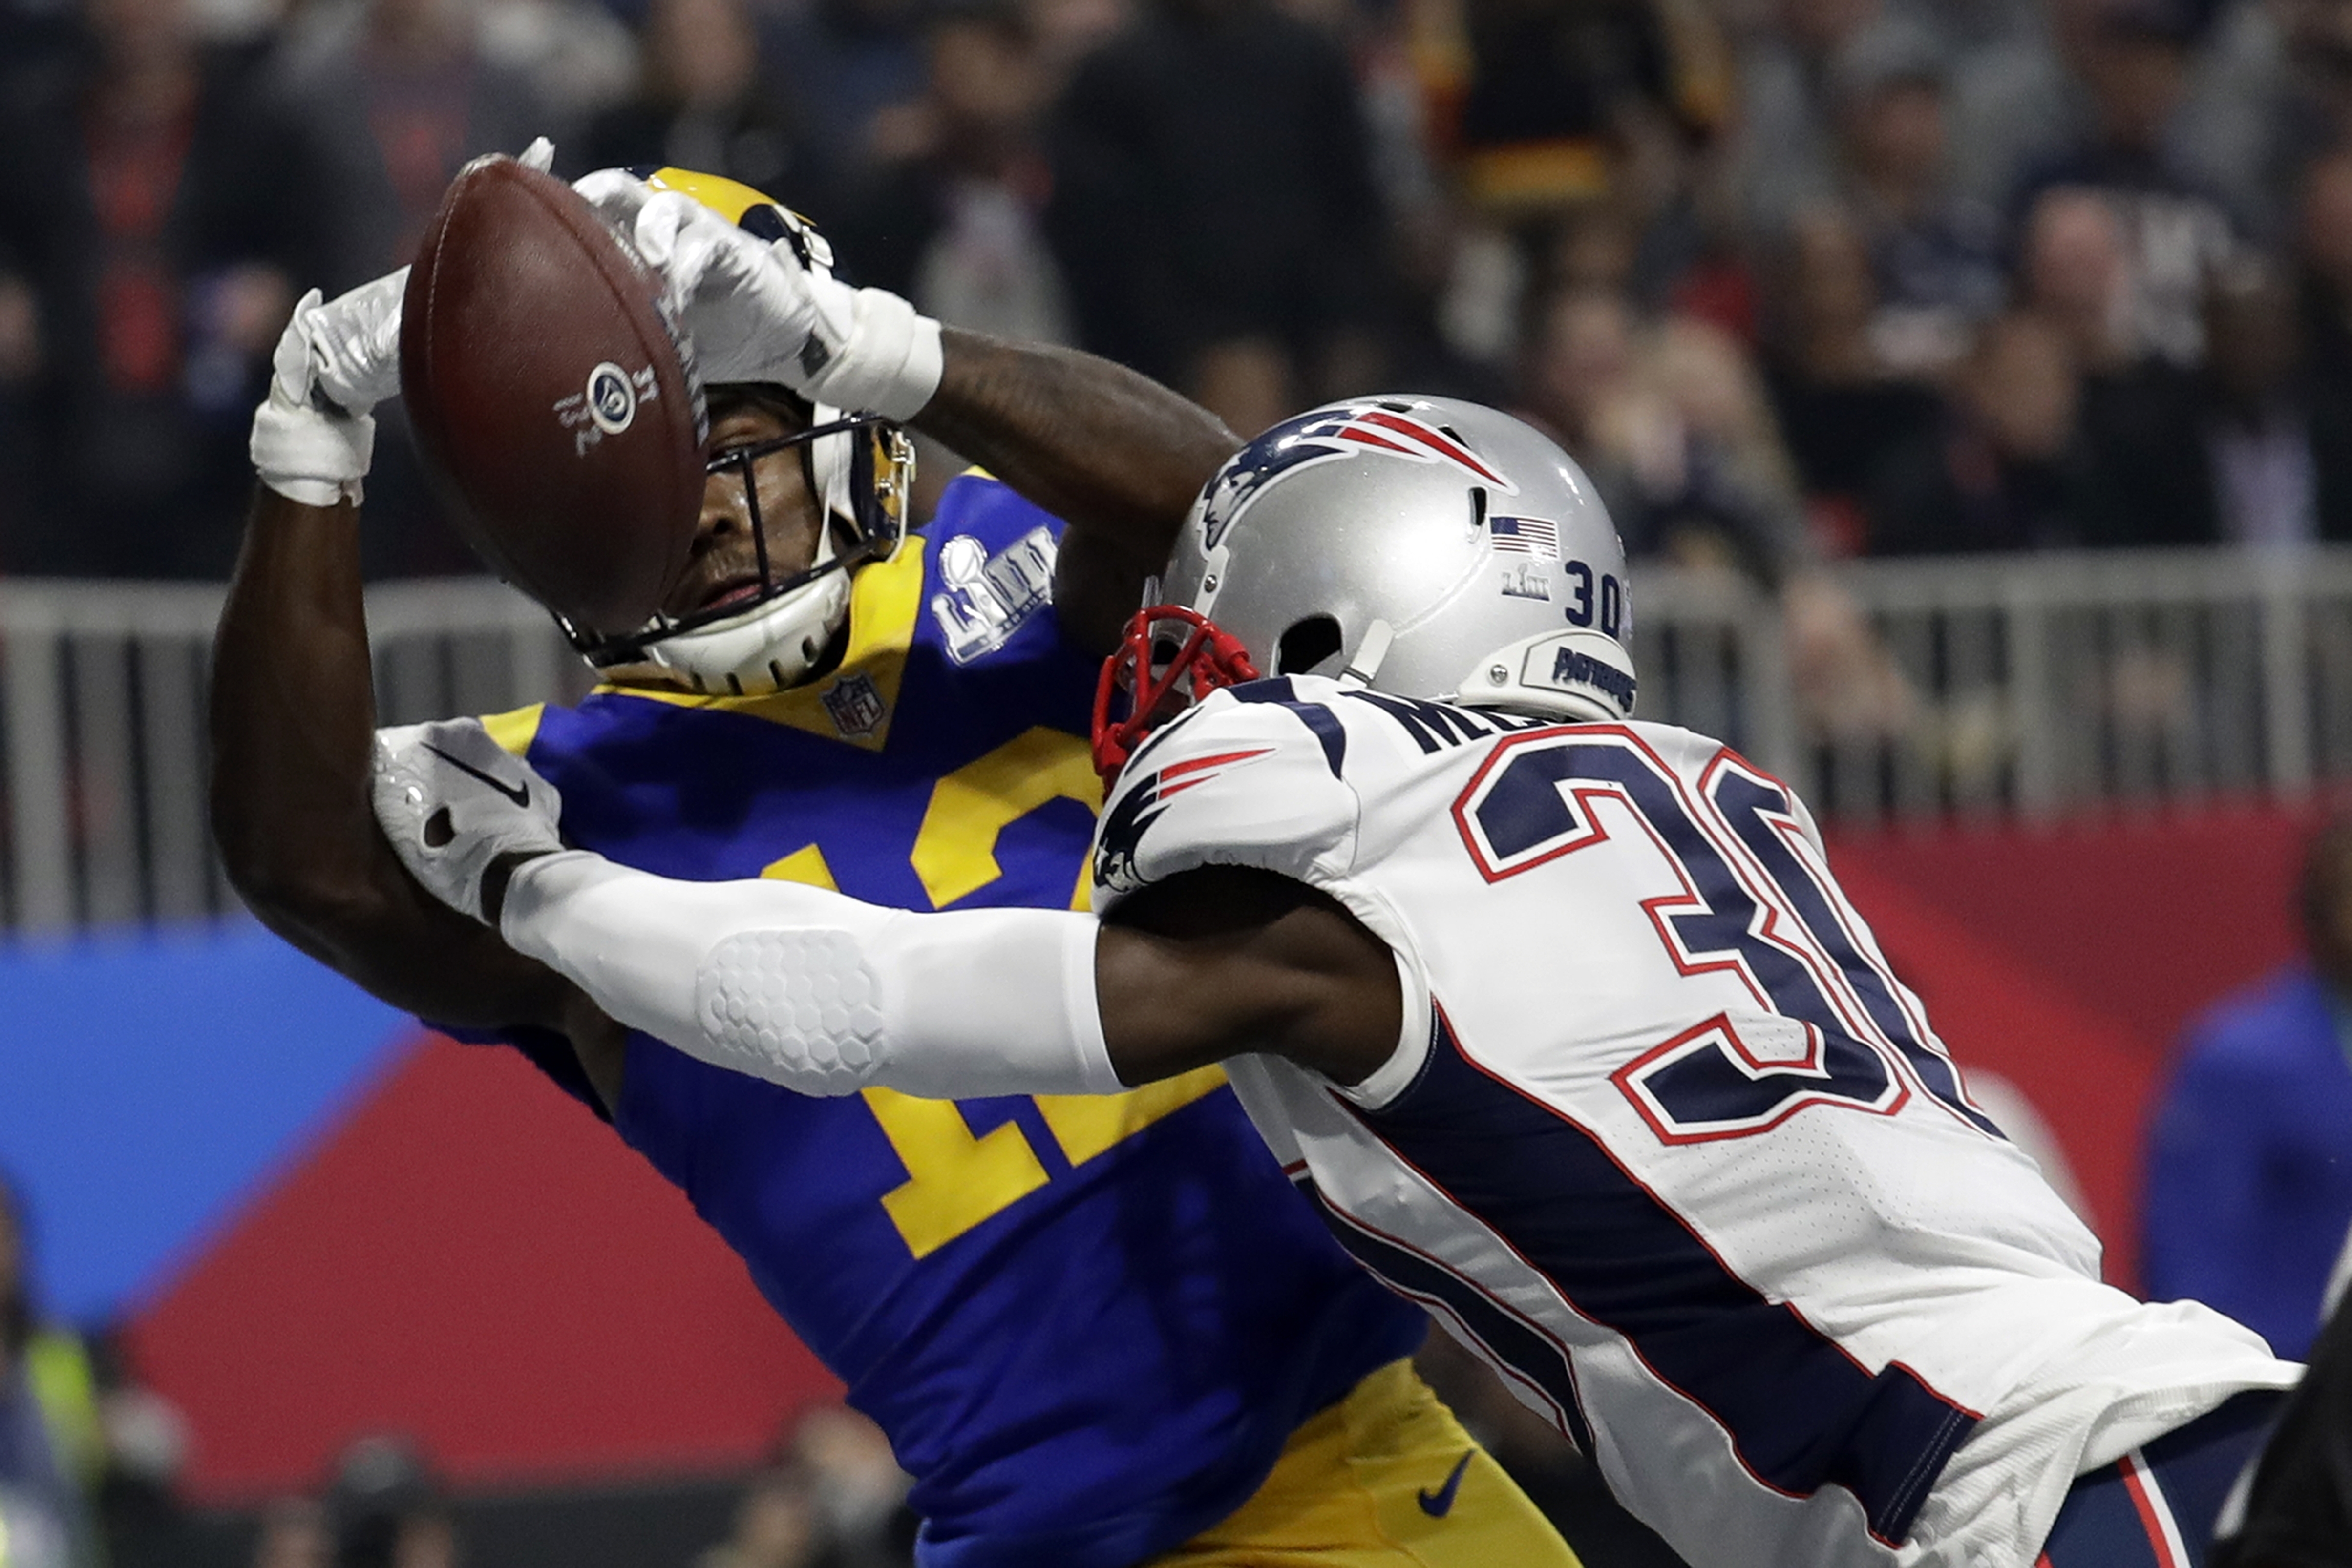 Brandin Cooks drops two crucial passes that doom Rams in